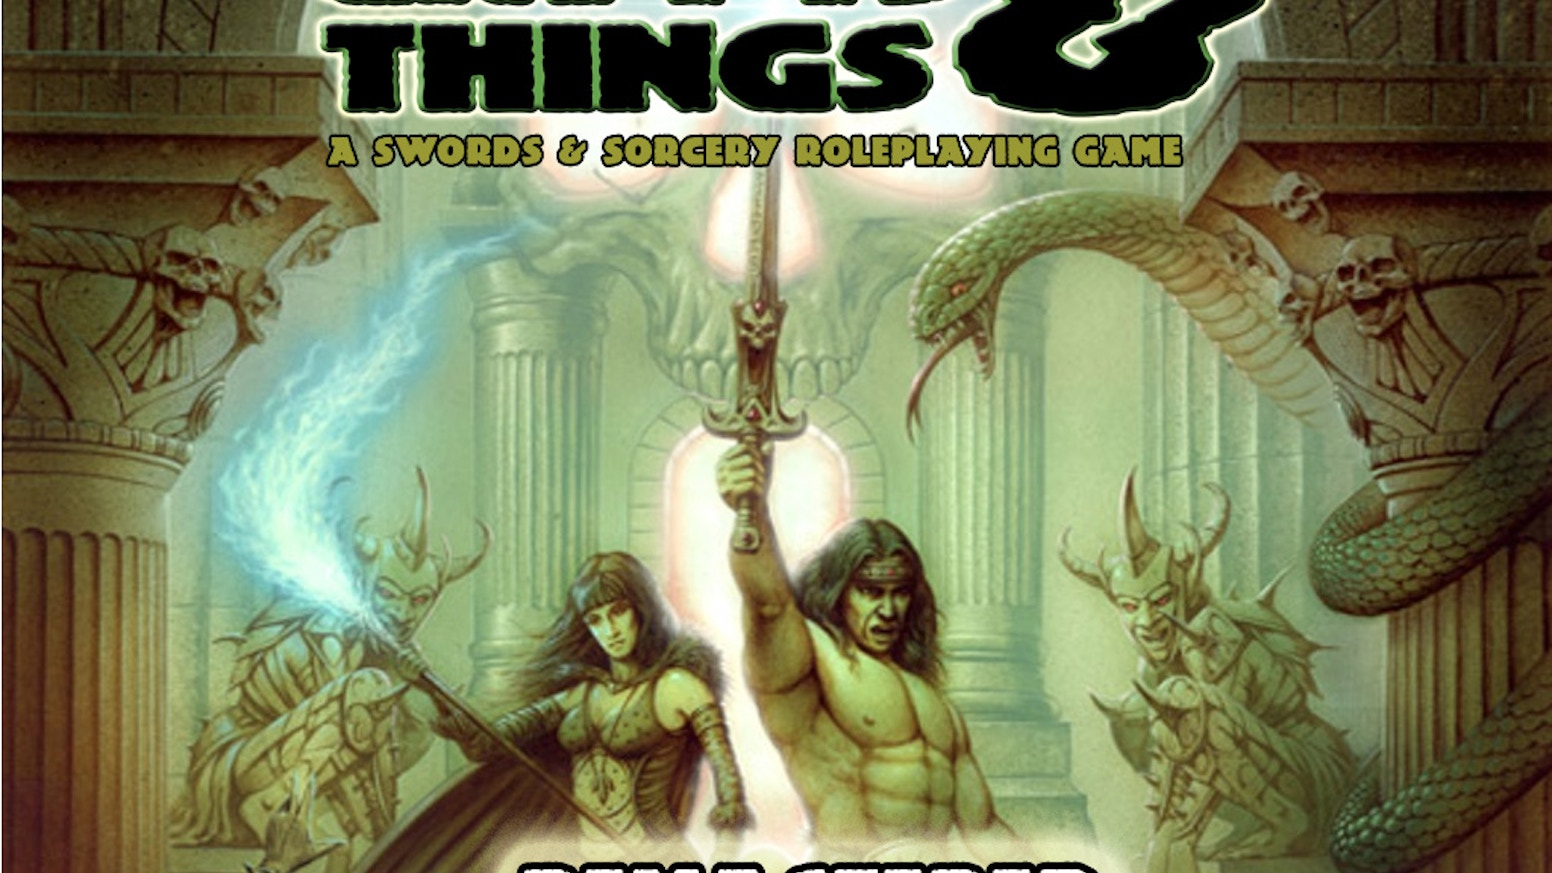 A  Swords & Sorcery Tabletop Roleplaying Game from the British Old School.